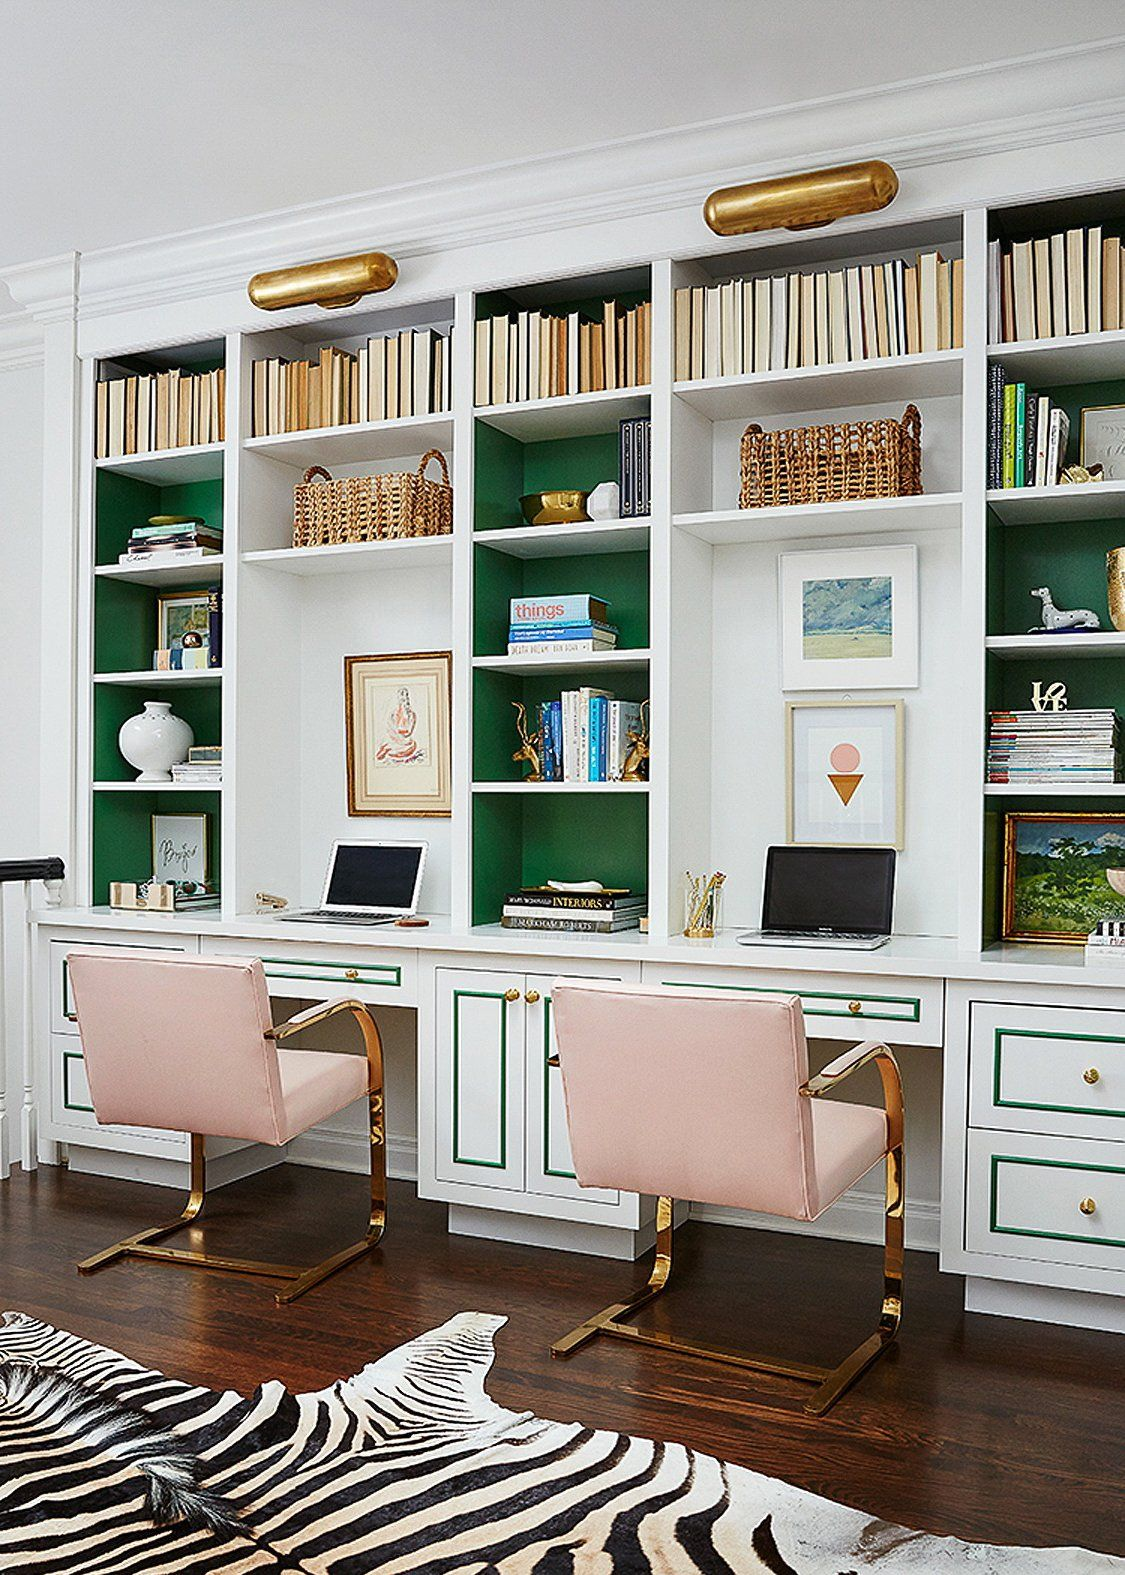 46+ Desk made with bookshelves ideas in 2021